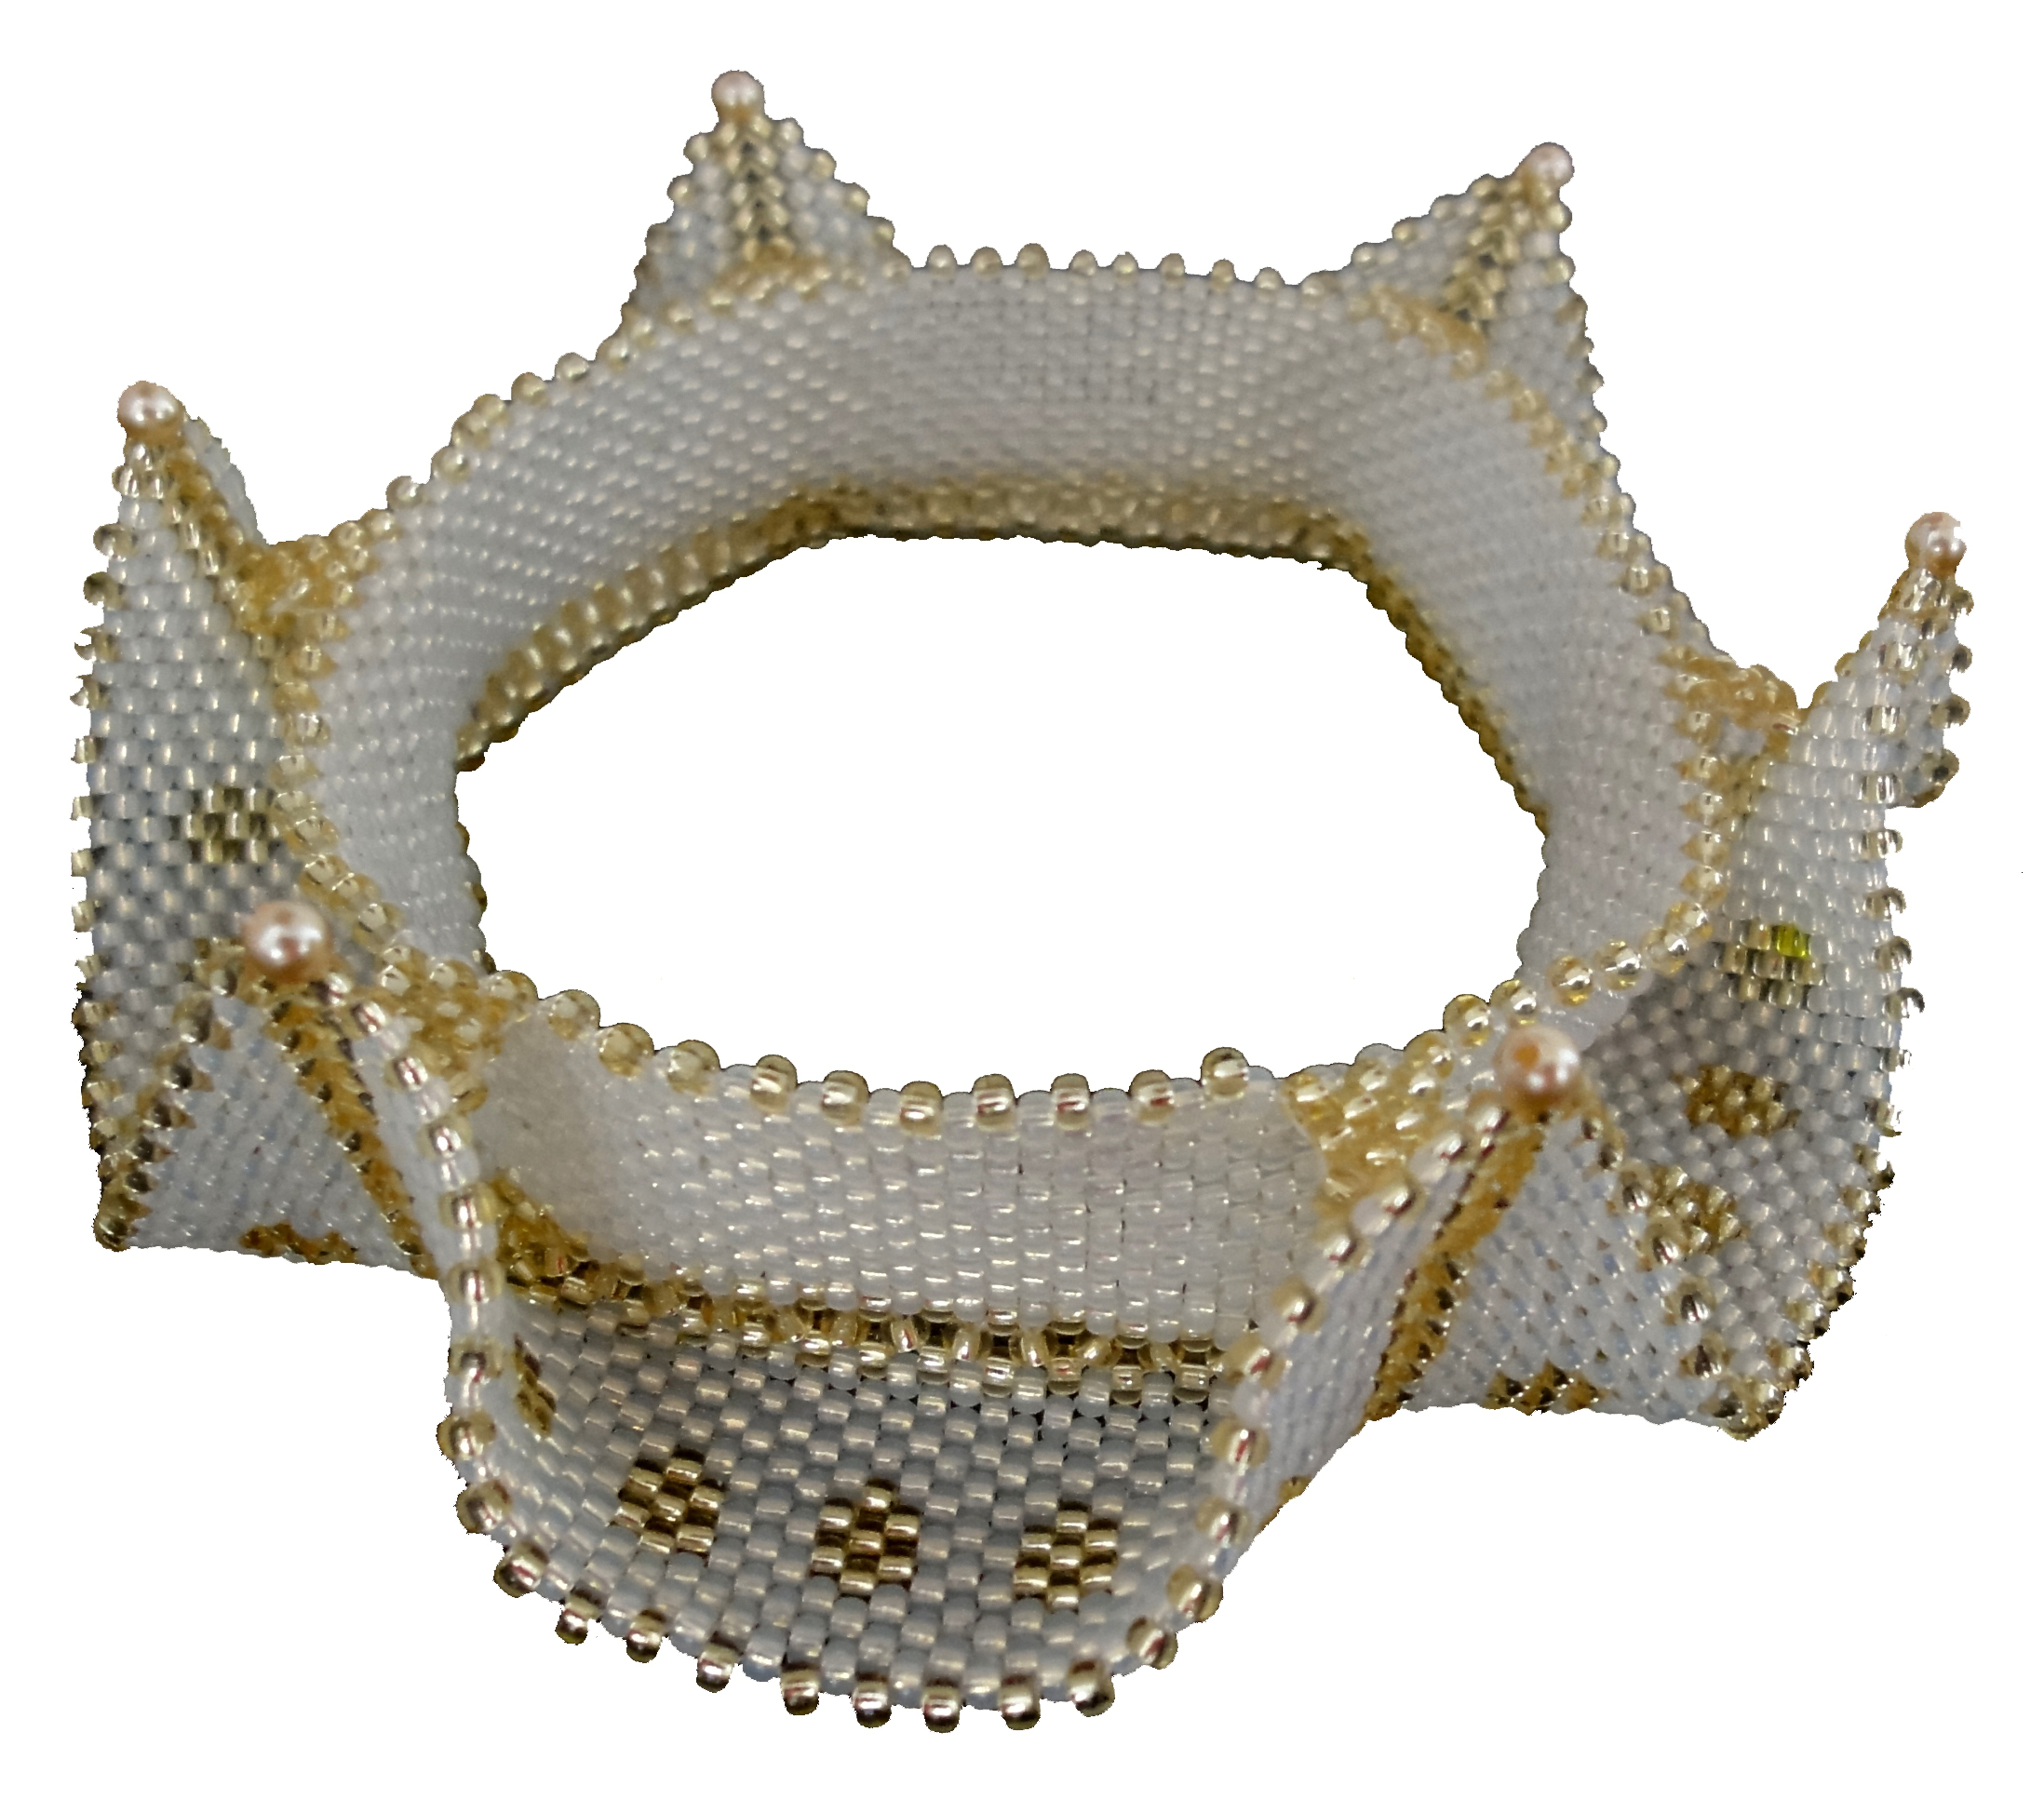 Horned cuff white